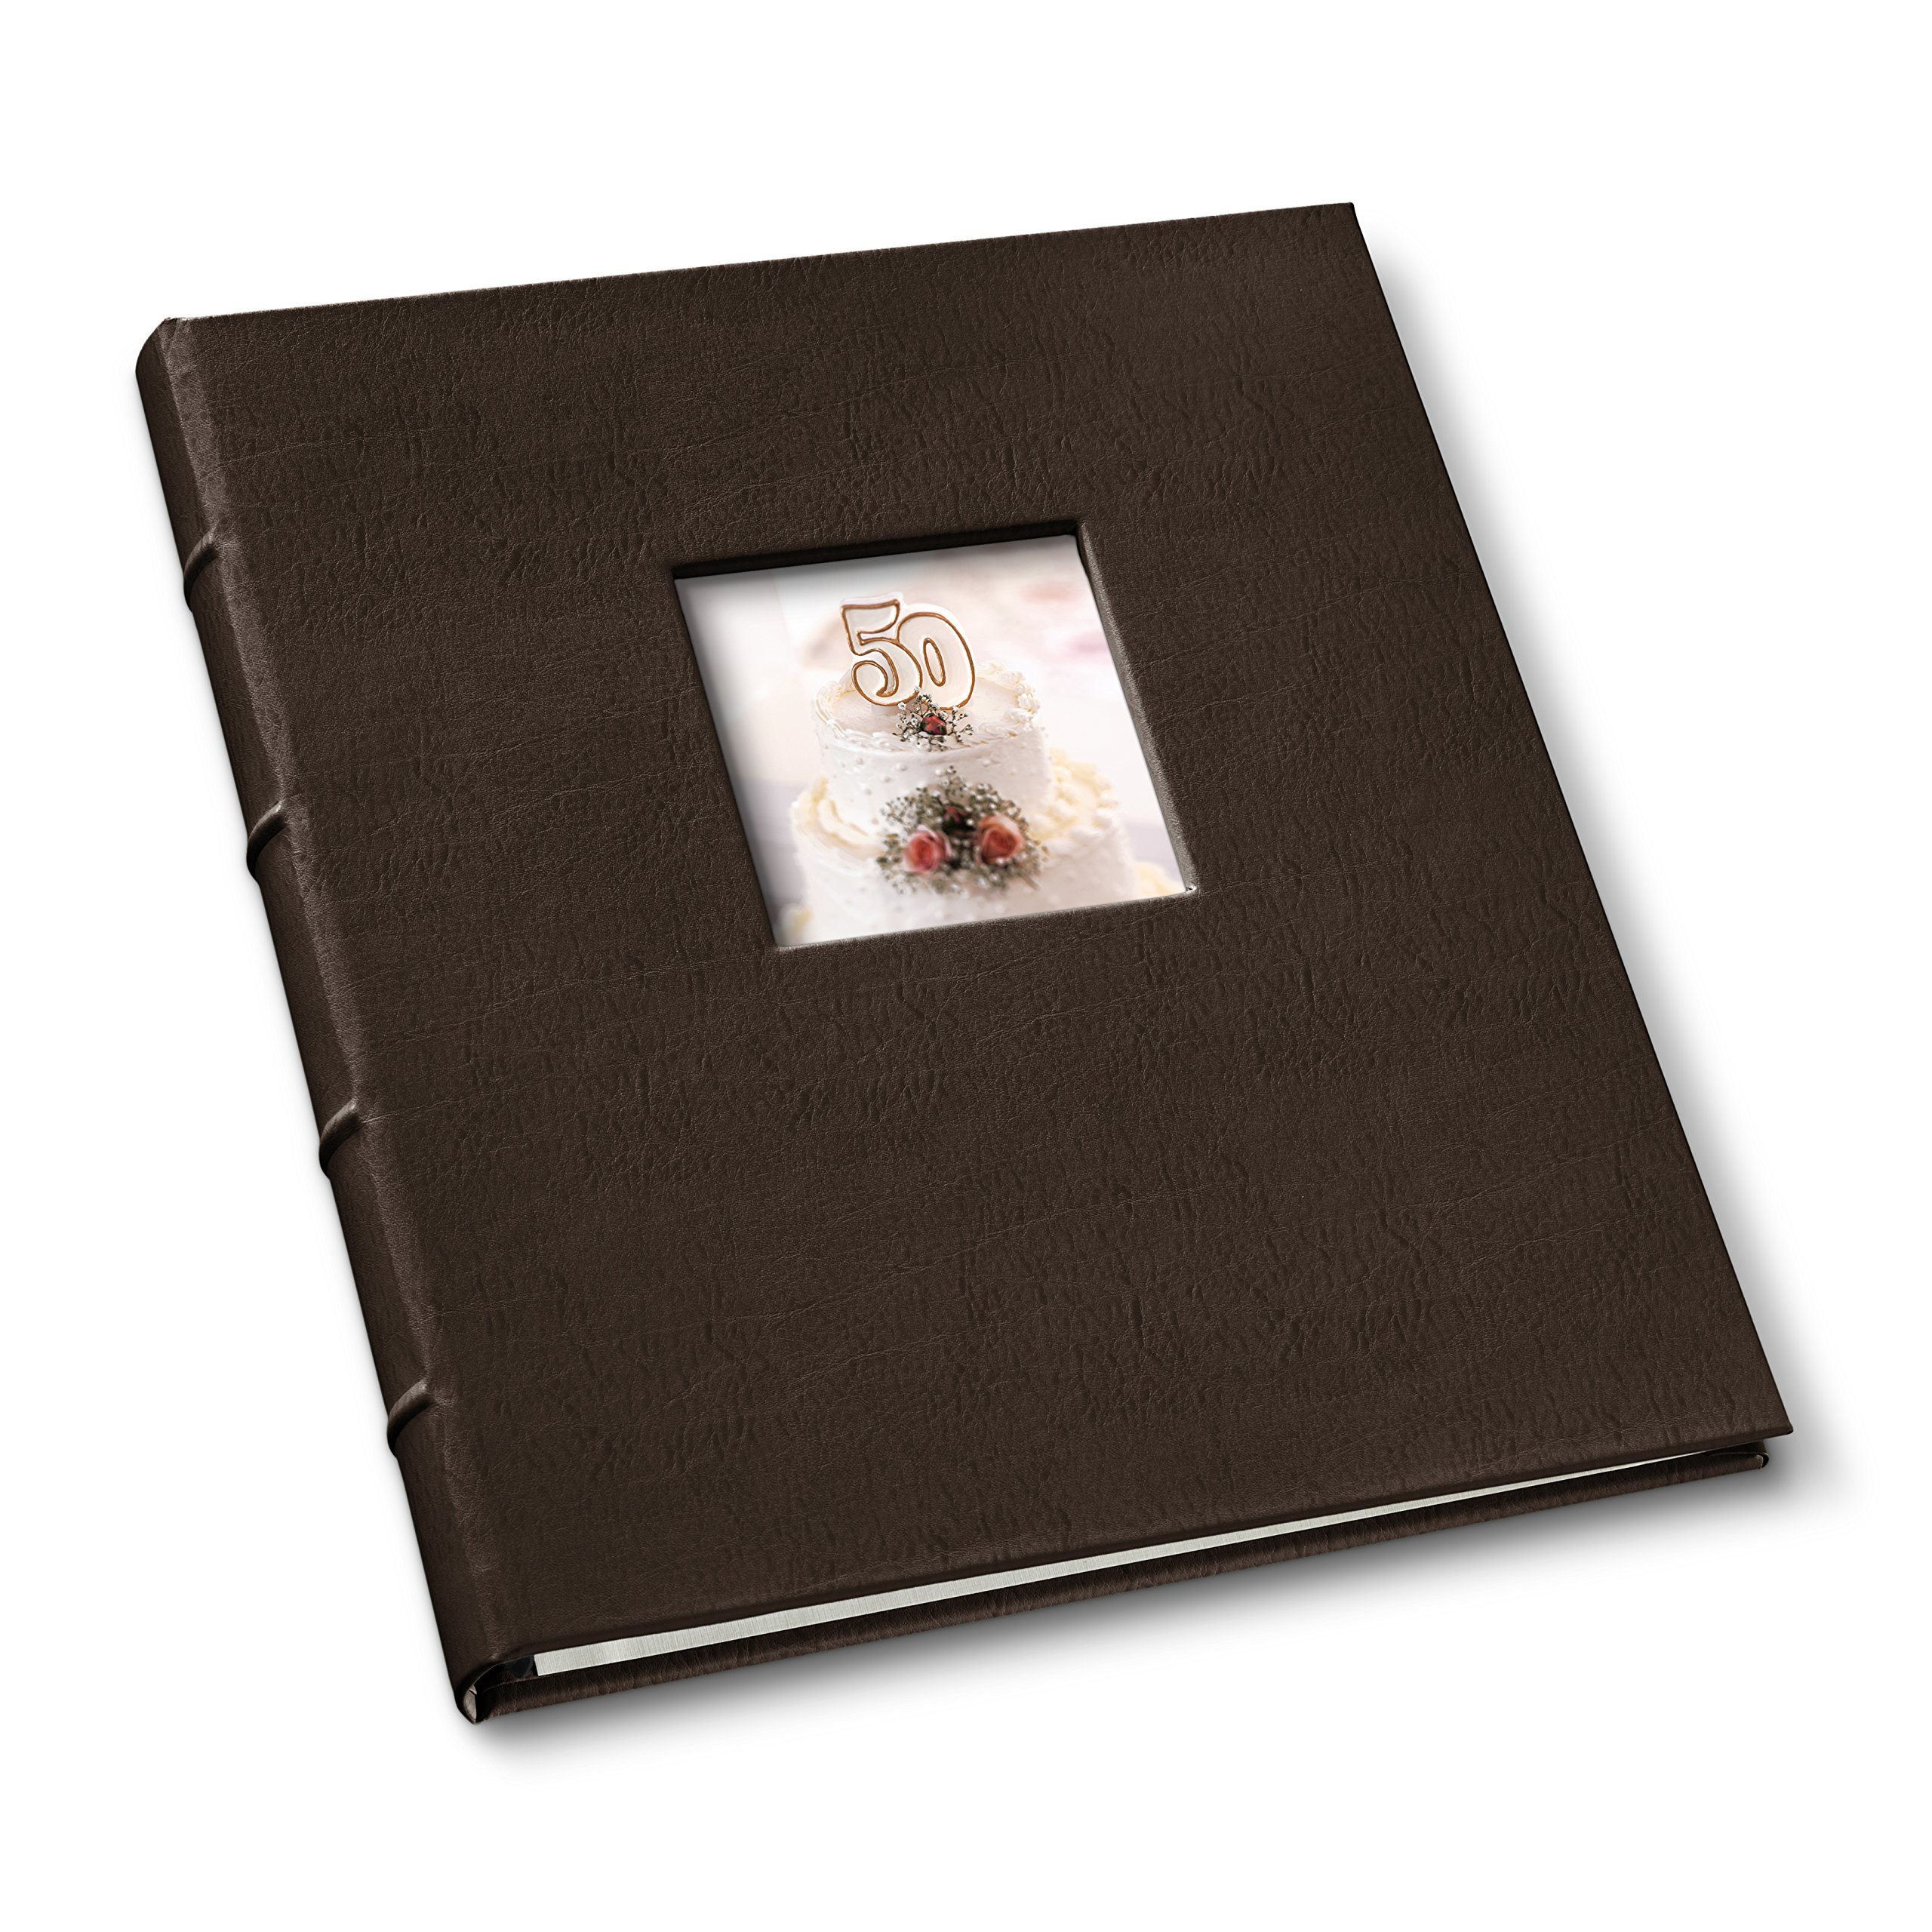 Gallery Leather Presentation Binder 3/4'' With Window and Hubbed Spine Freeport Mocha by Gallery Leather